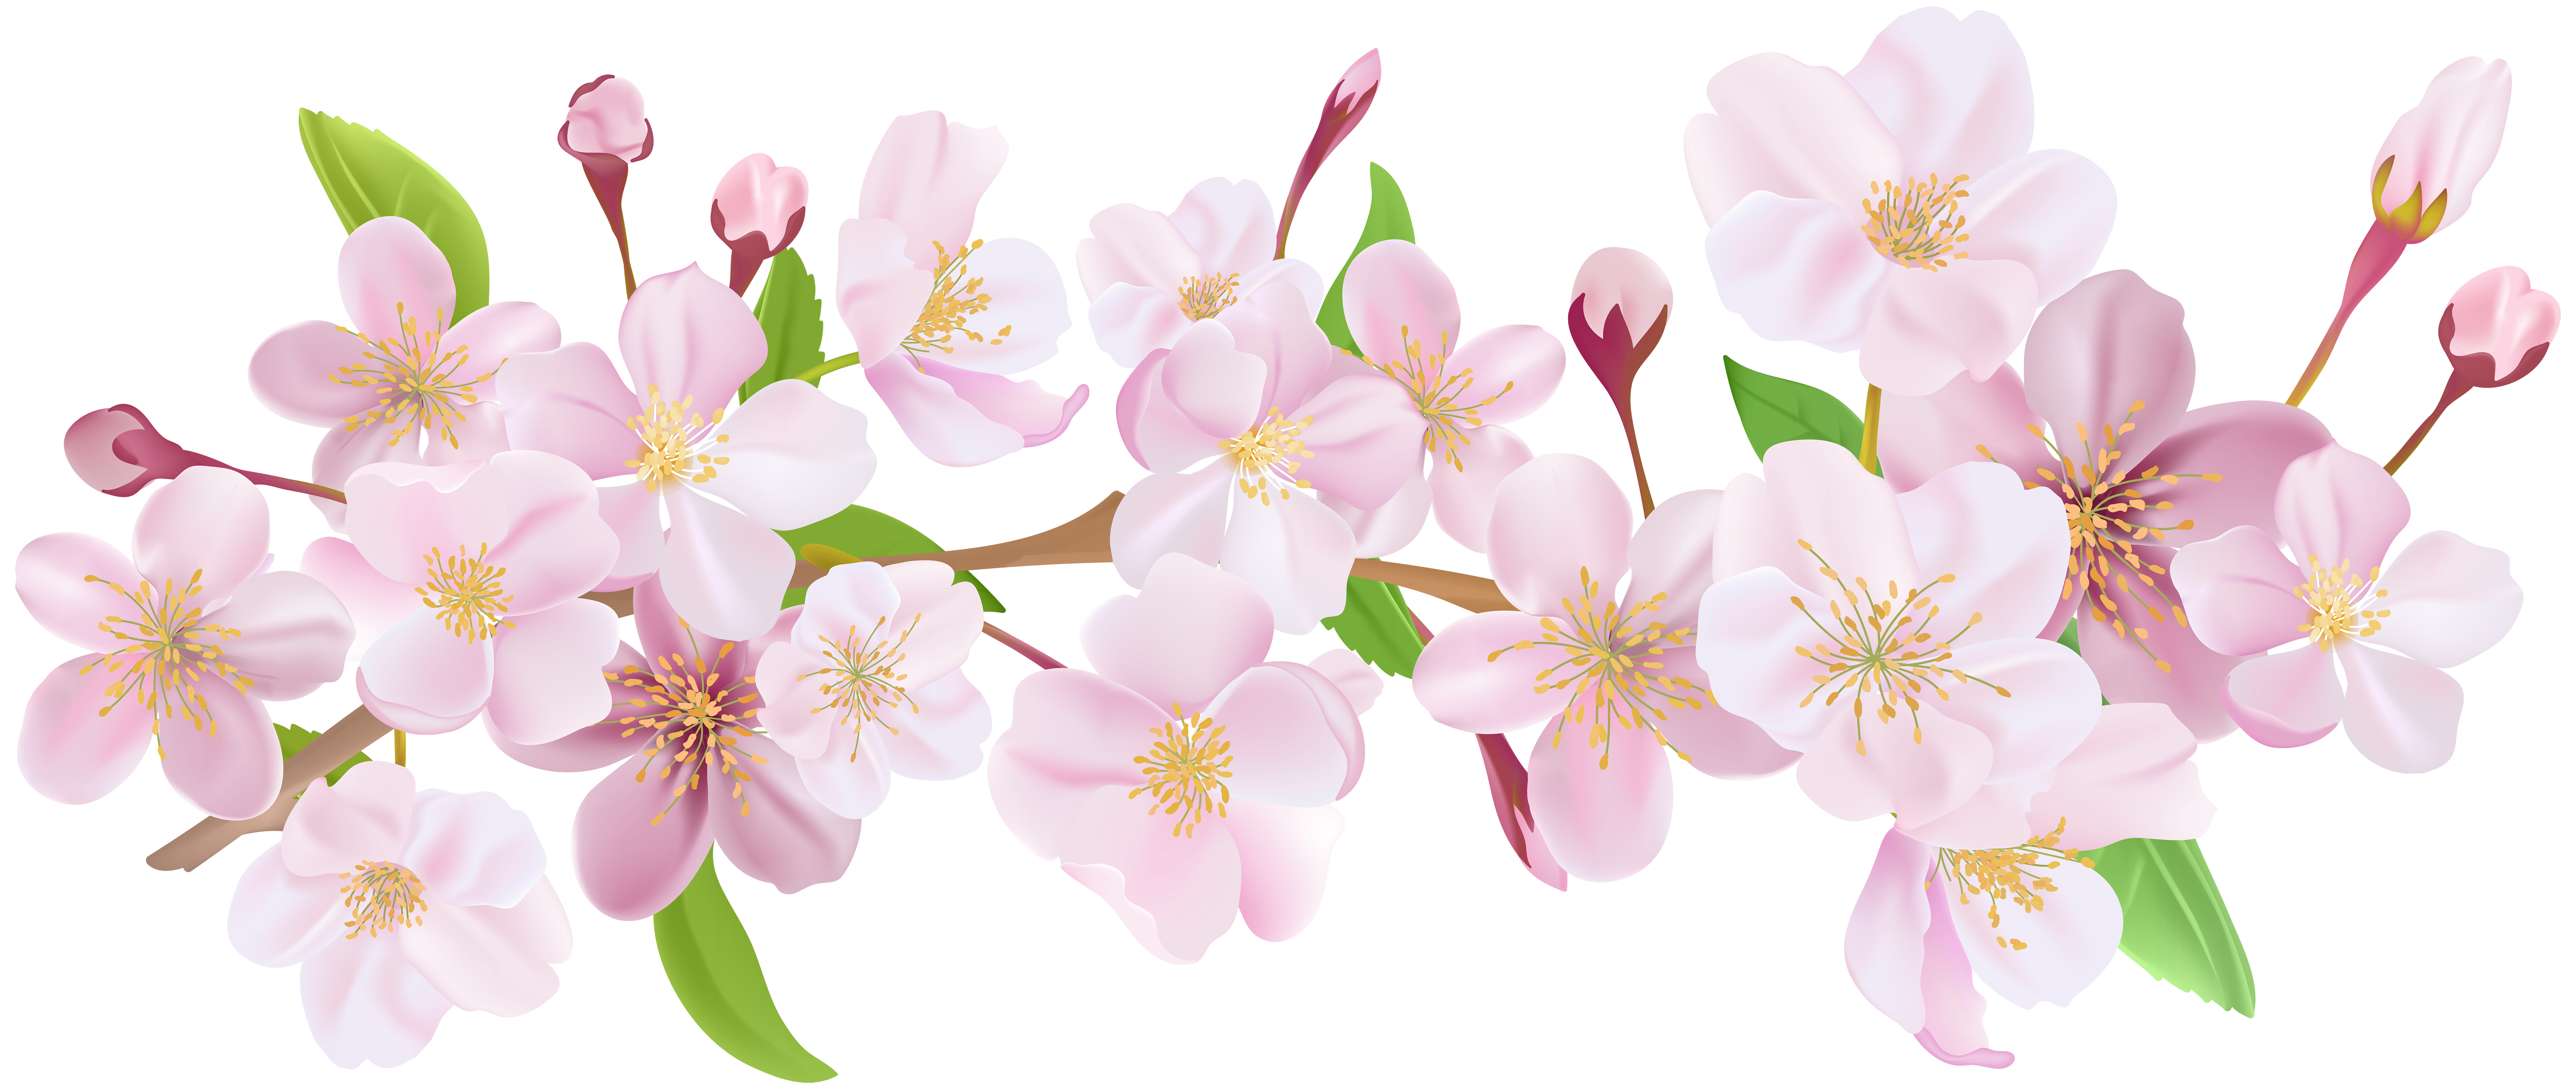 Blossom spring branch clip. Cherry blossoms falling png clip art royalty free stock